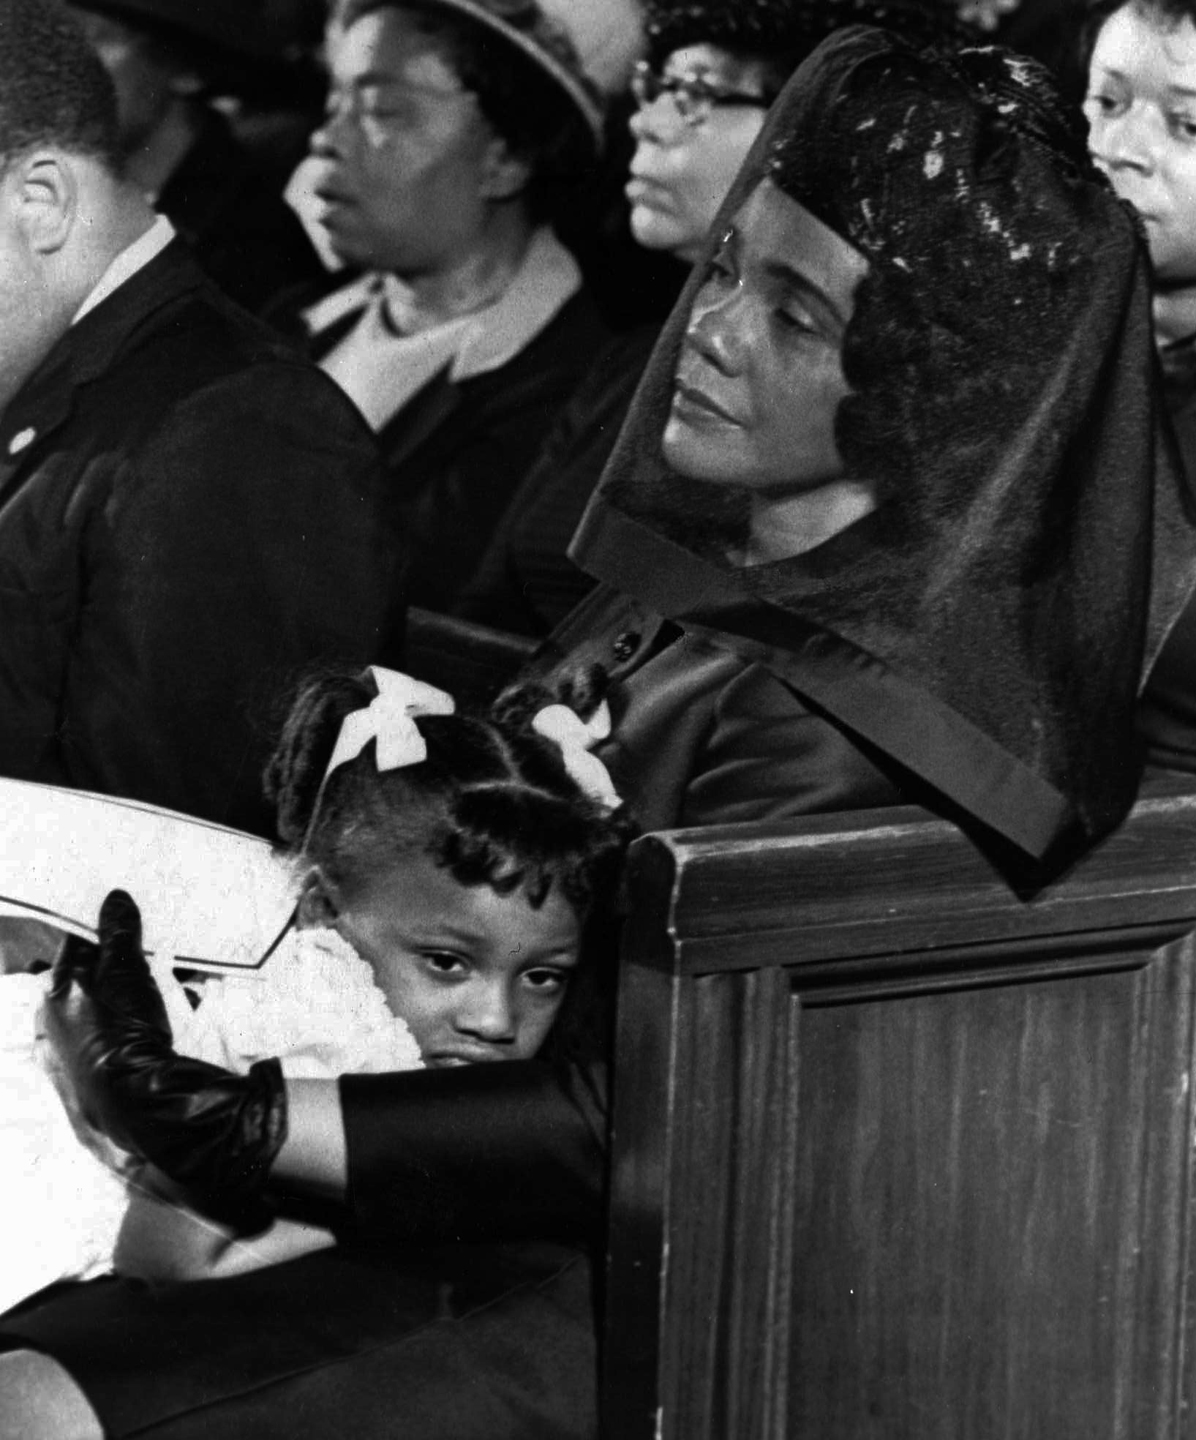 Coretta Scott King and her daughter, Bernice are shown April 9, 1968, in Atlanta, Ga. attending the funeral of her husband, Martin Luther King, Jr., in this Pulitzer-prize winning photograph taken by Moneta J. Sleet, Jr., the first African-American to win a Pulitzer Prize for photography.